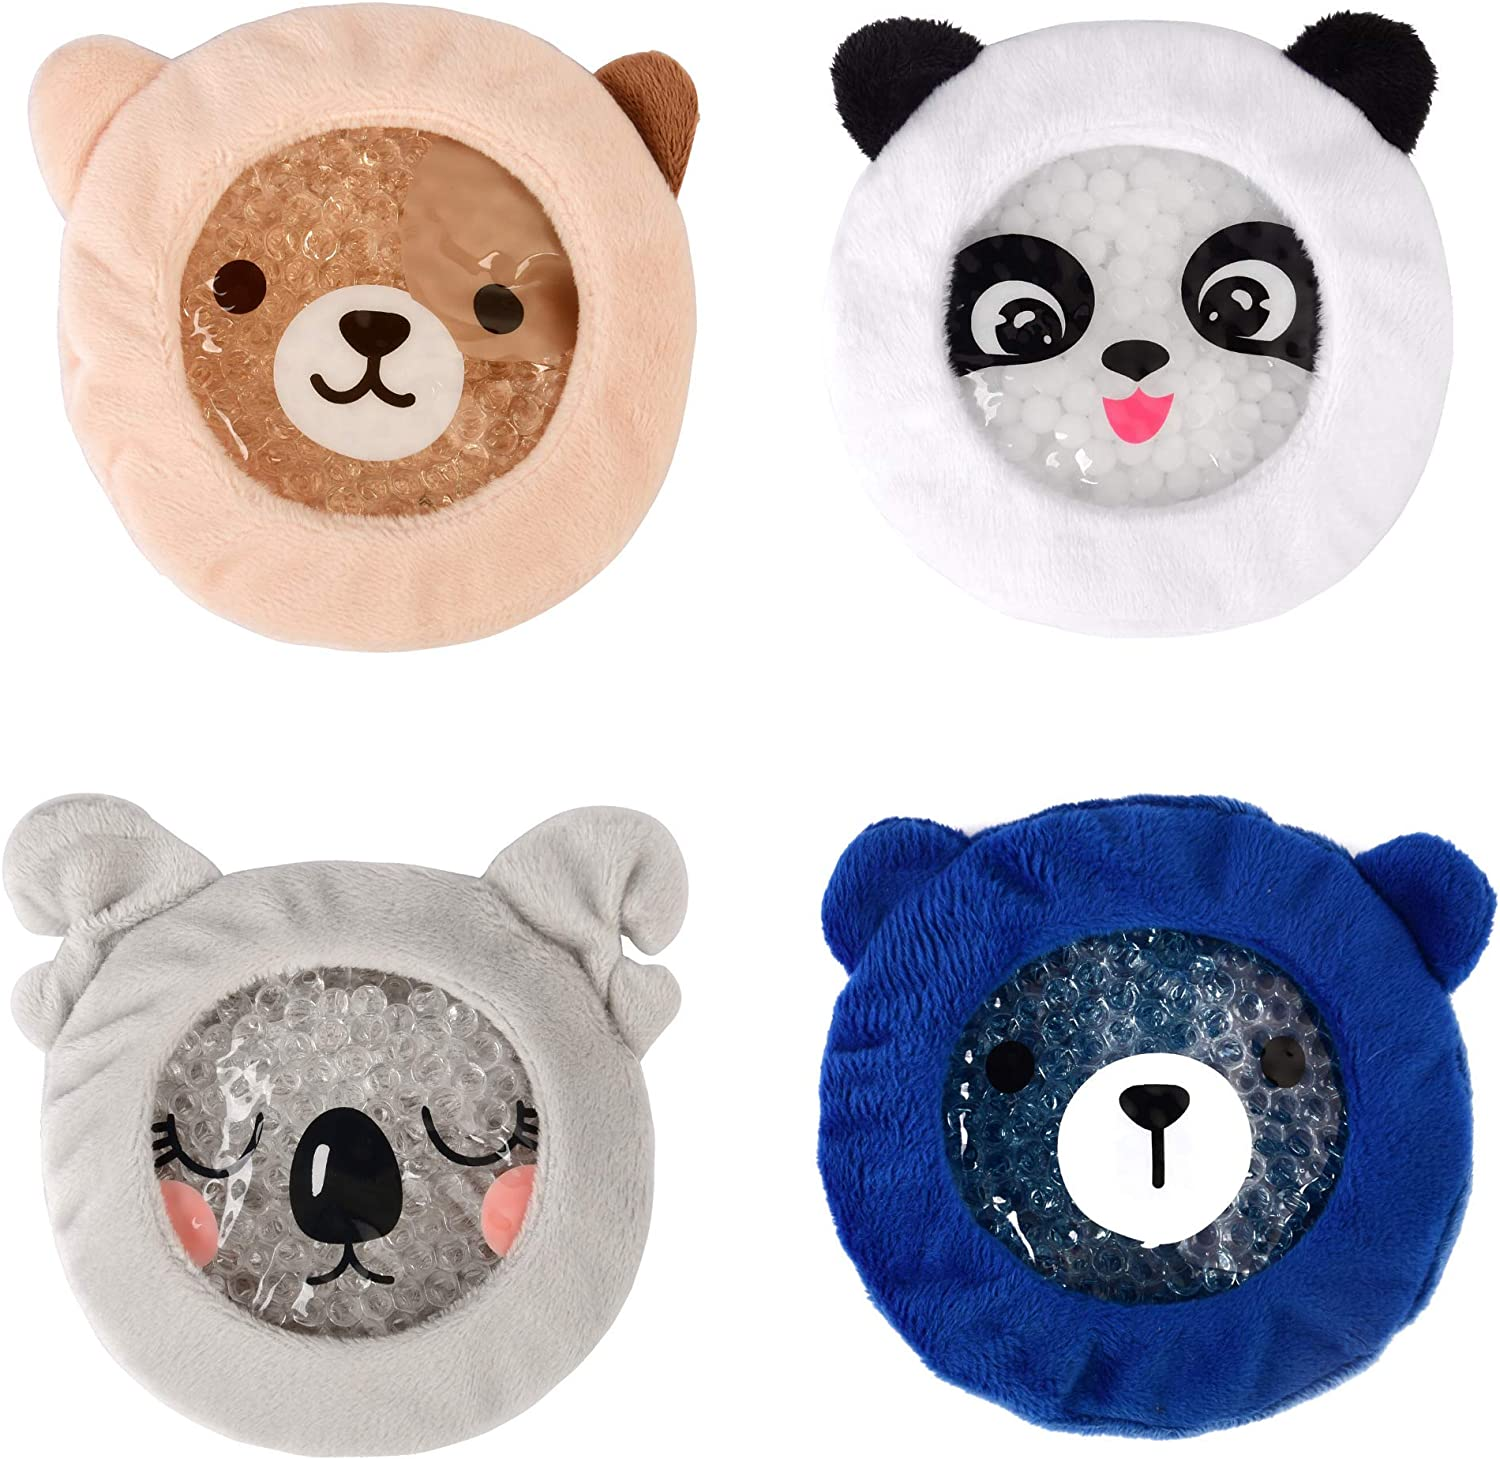 Kid's Boo Boo Ice Packs w/Ultra Soft and Fun Sleeves- Hot and Cold Therapy - Children's Pain Relief Cold Compress for Injuries (Panda)